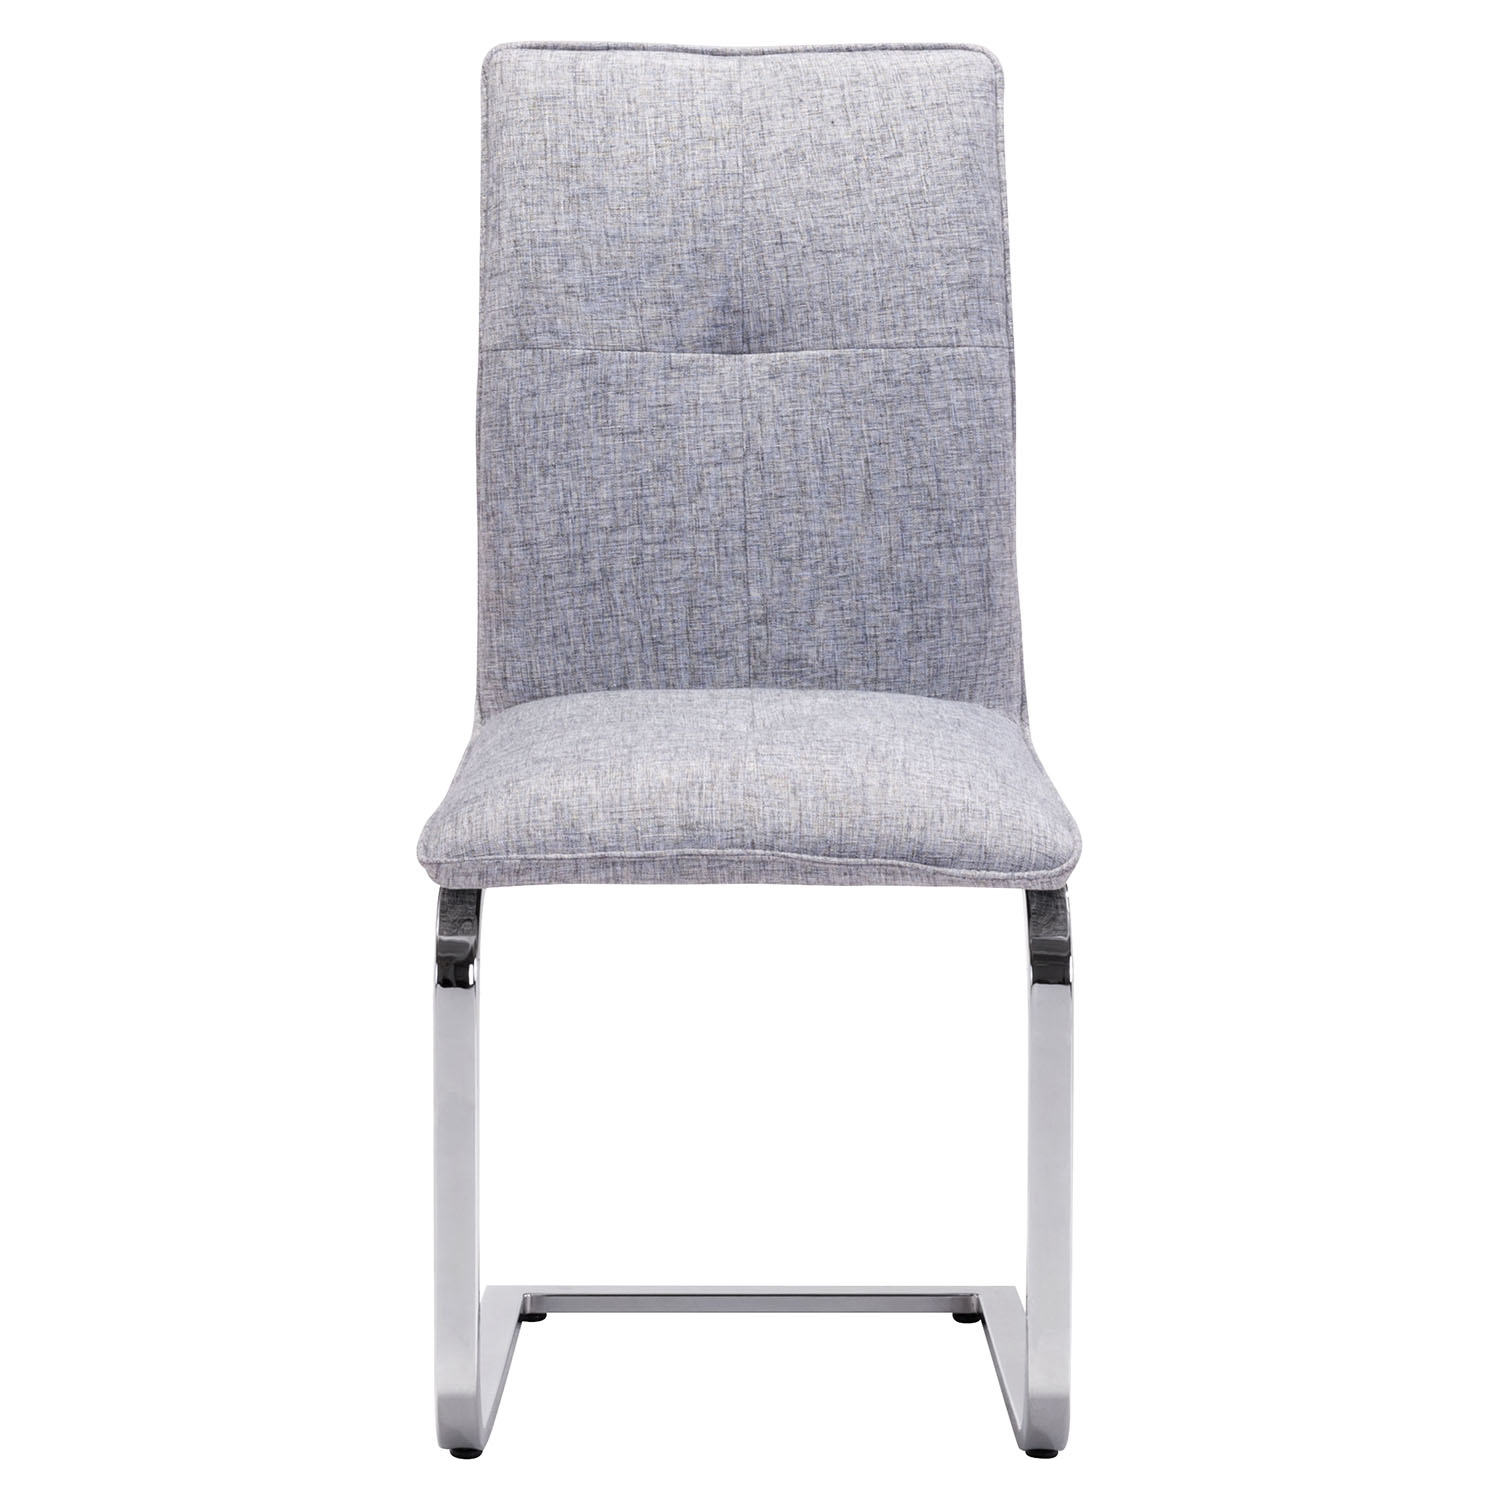 Anjou Dining Chair - Gray